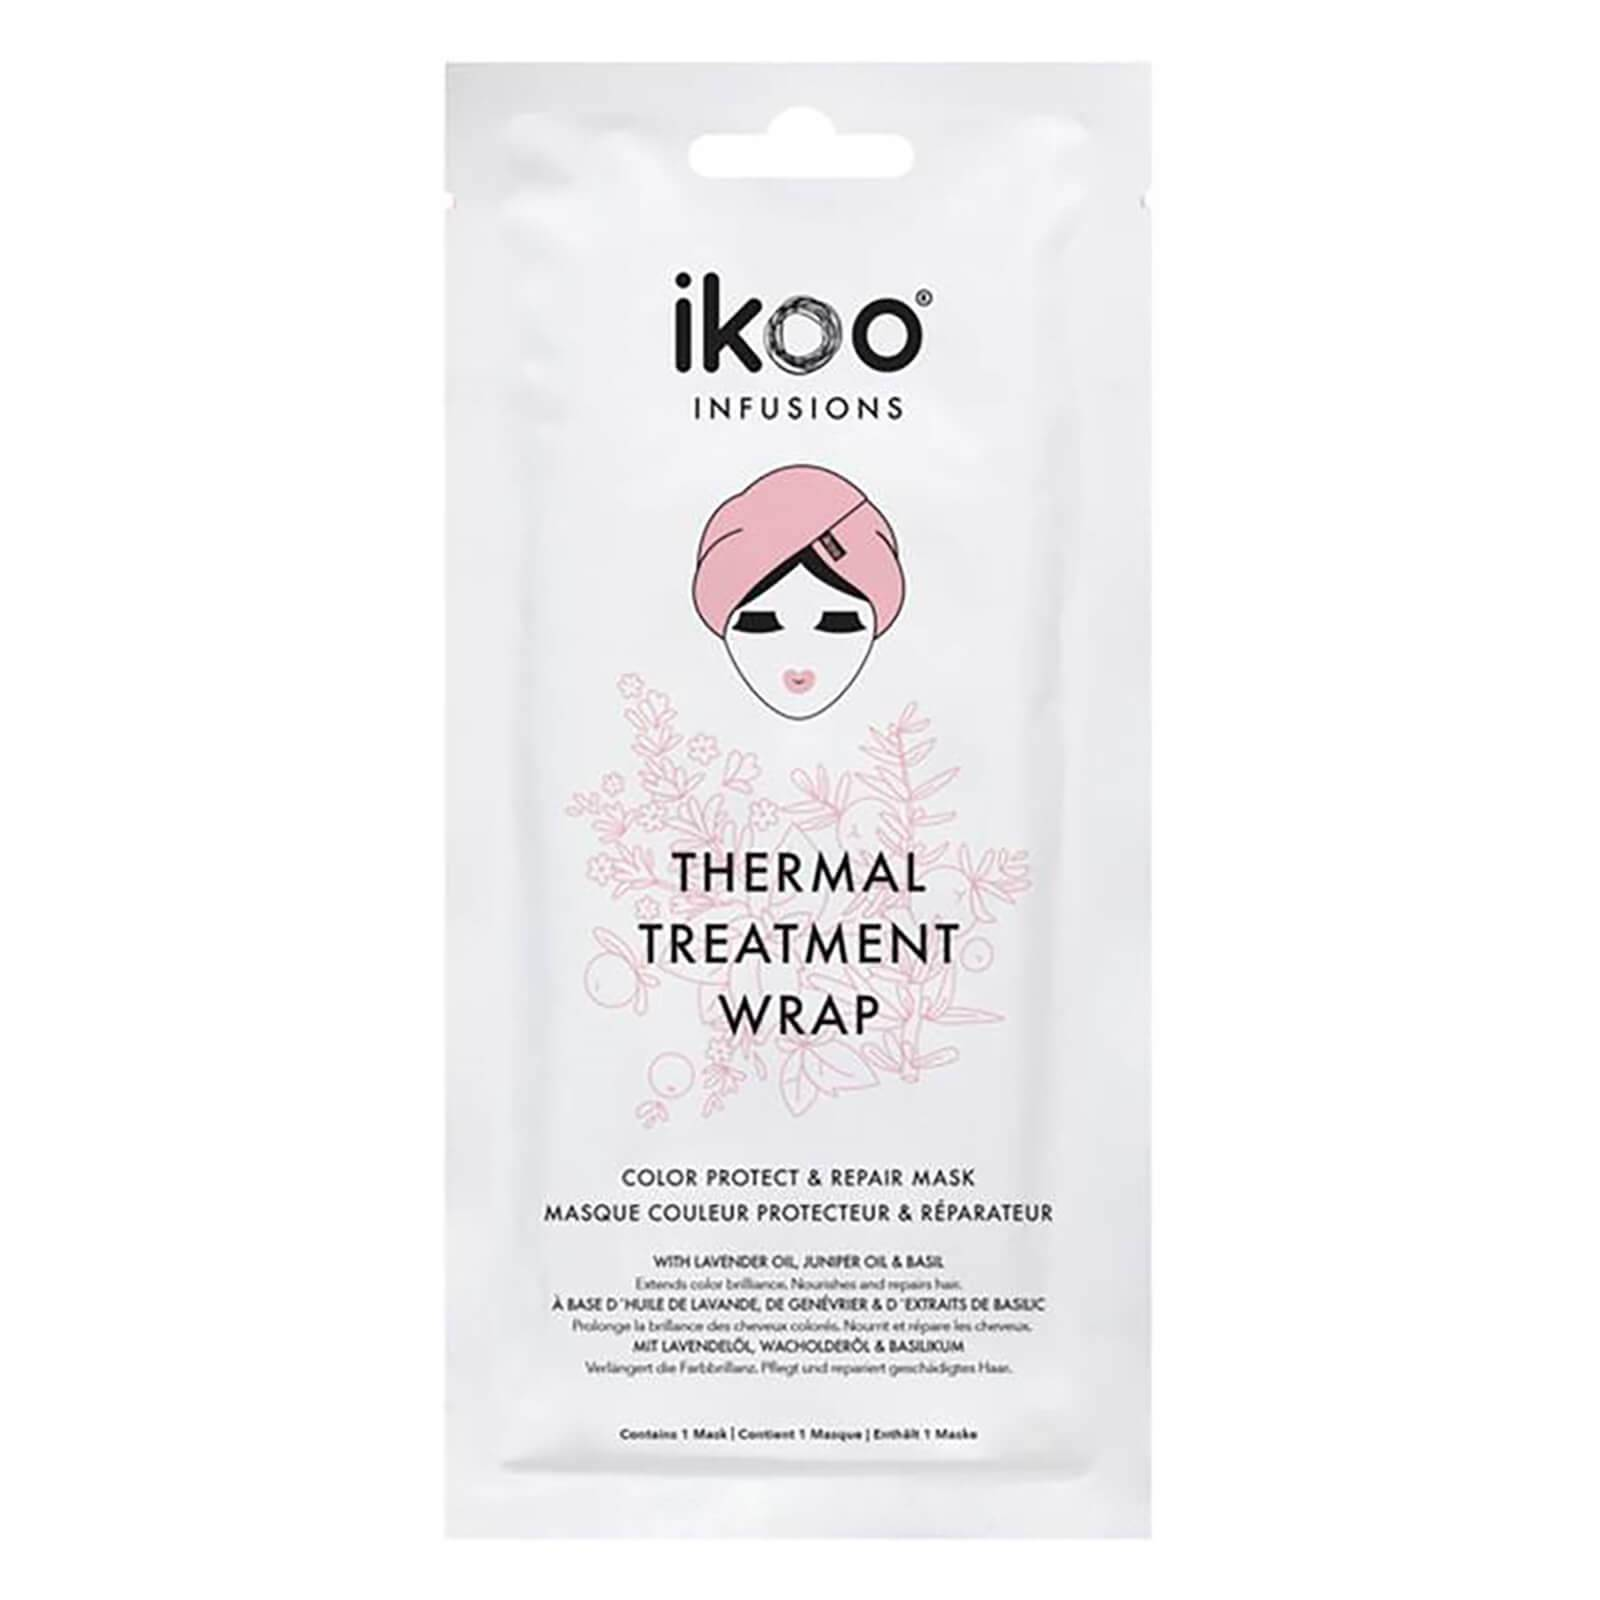 ikoo Infusions Thermal Treatment Hair Wrap Color Protect and Repair Mask 35g